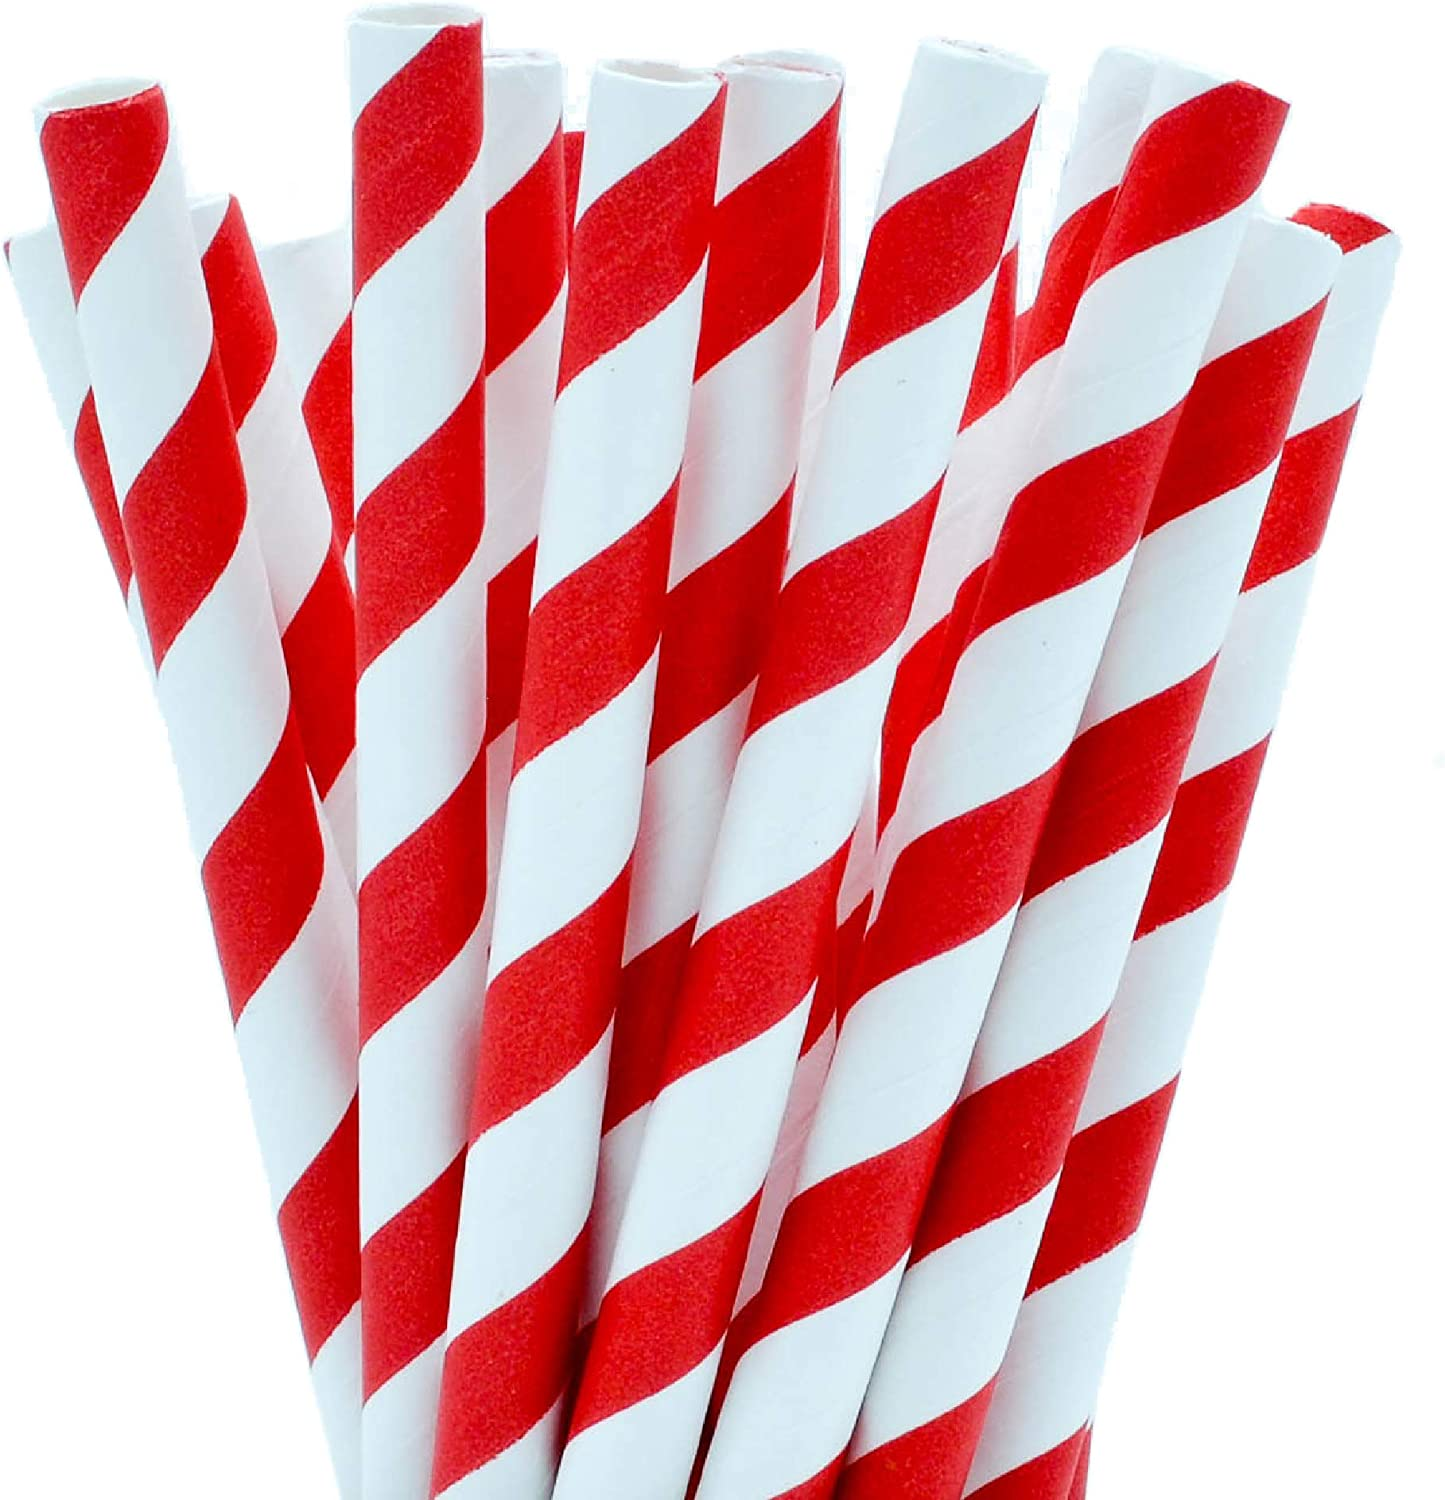 Green Red Navy Black Stripes Colorful 10mm Diameter Large Smoothies Paper Straw